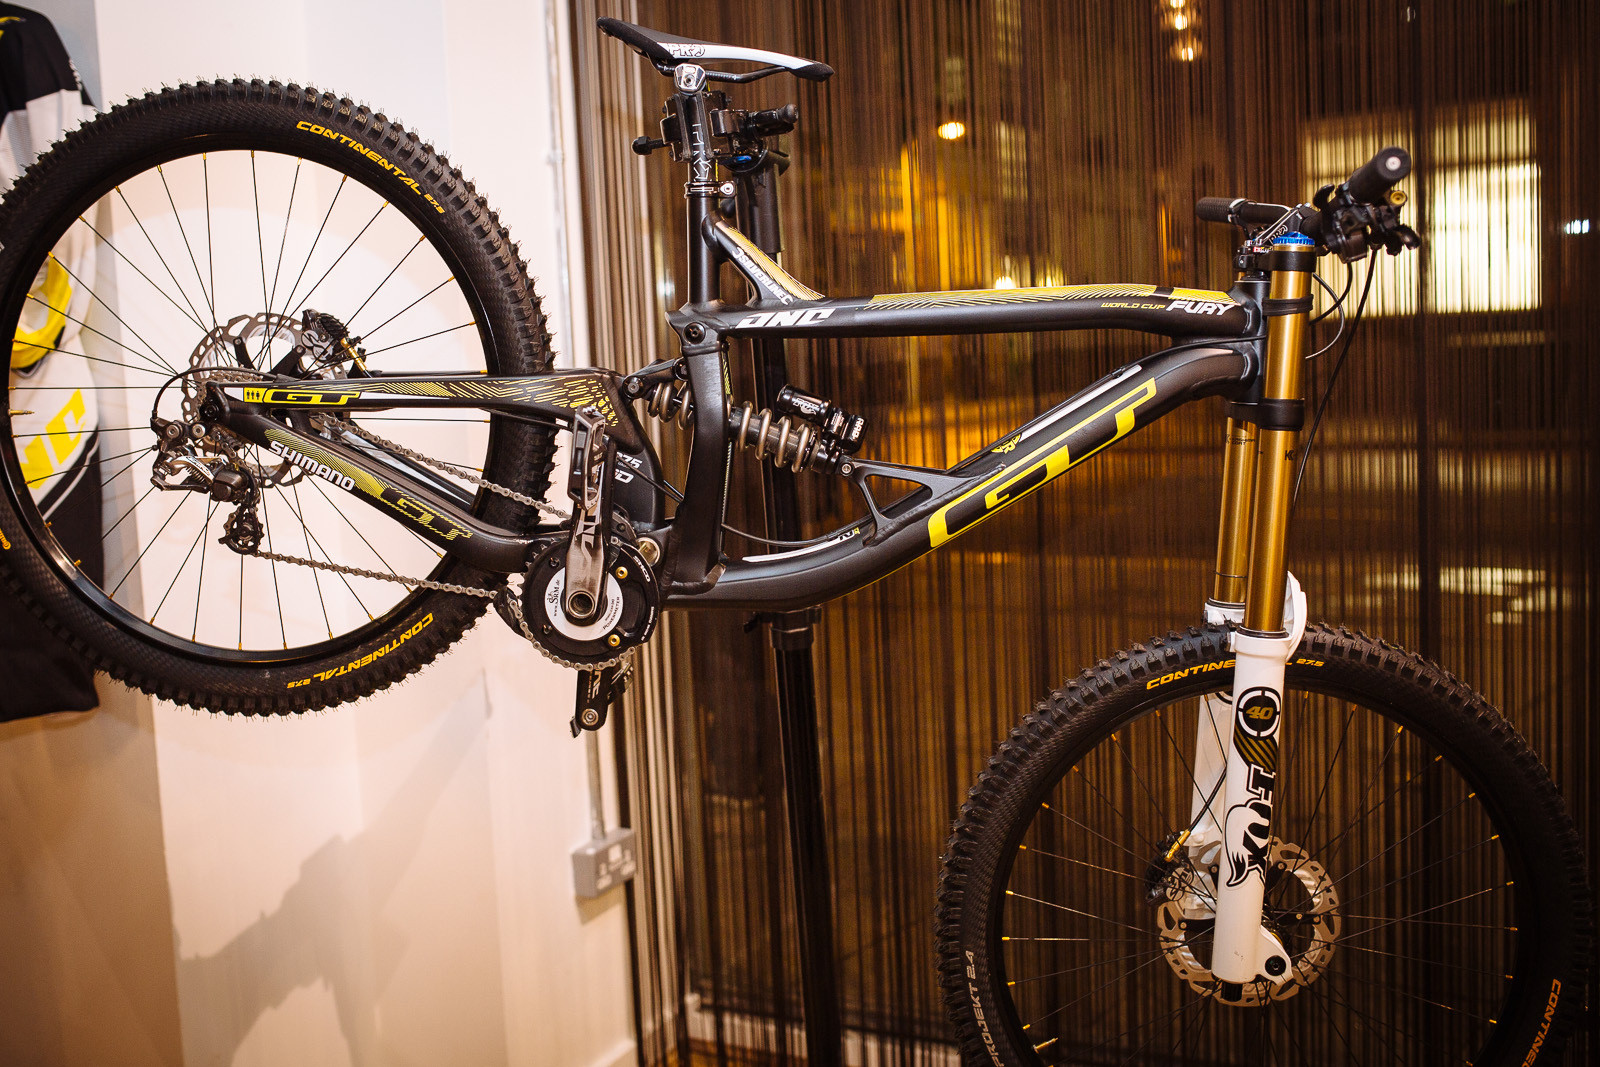 2014 Atherton Racing GT Fury 27.5 Bike - 2014 Atherton Racing GT Fury 27.5 Bike - Mountain Biking Pictures - Vital MTB